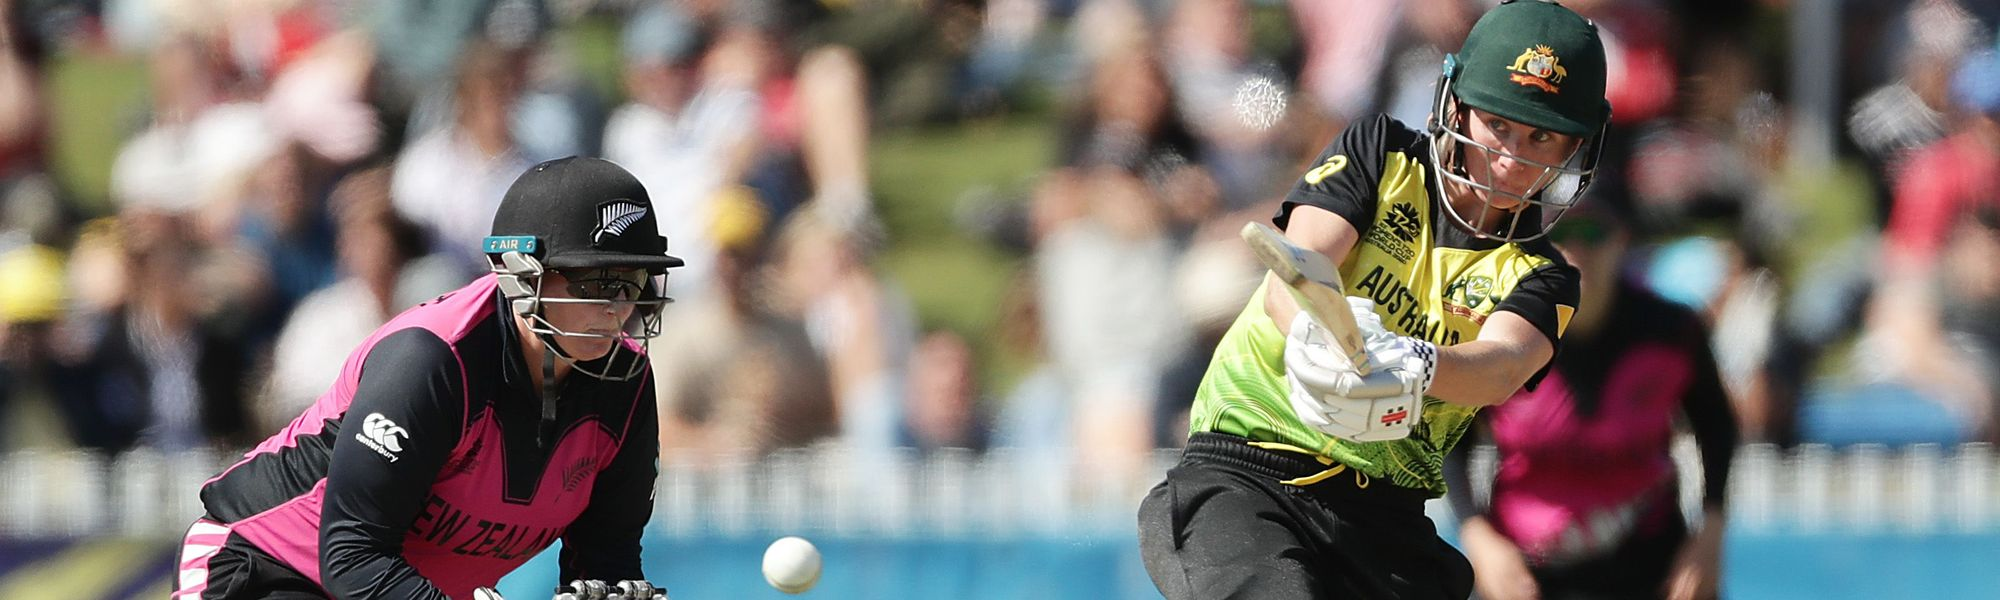 Beth Mooney of Australia bats during the ICC Women's T20 Cricket World Cup match between Australia and New Zealand at Junction Oval on March 02, 2020 in Melbourne, Australia.